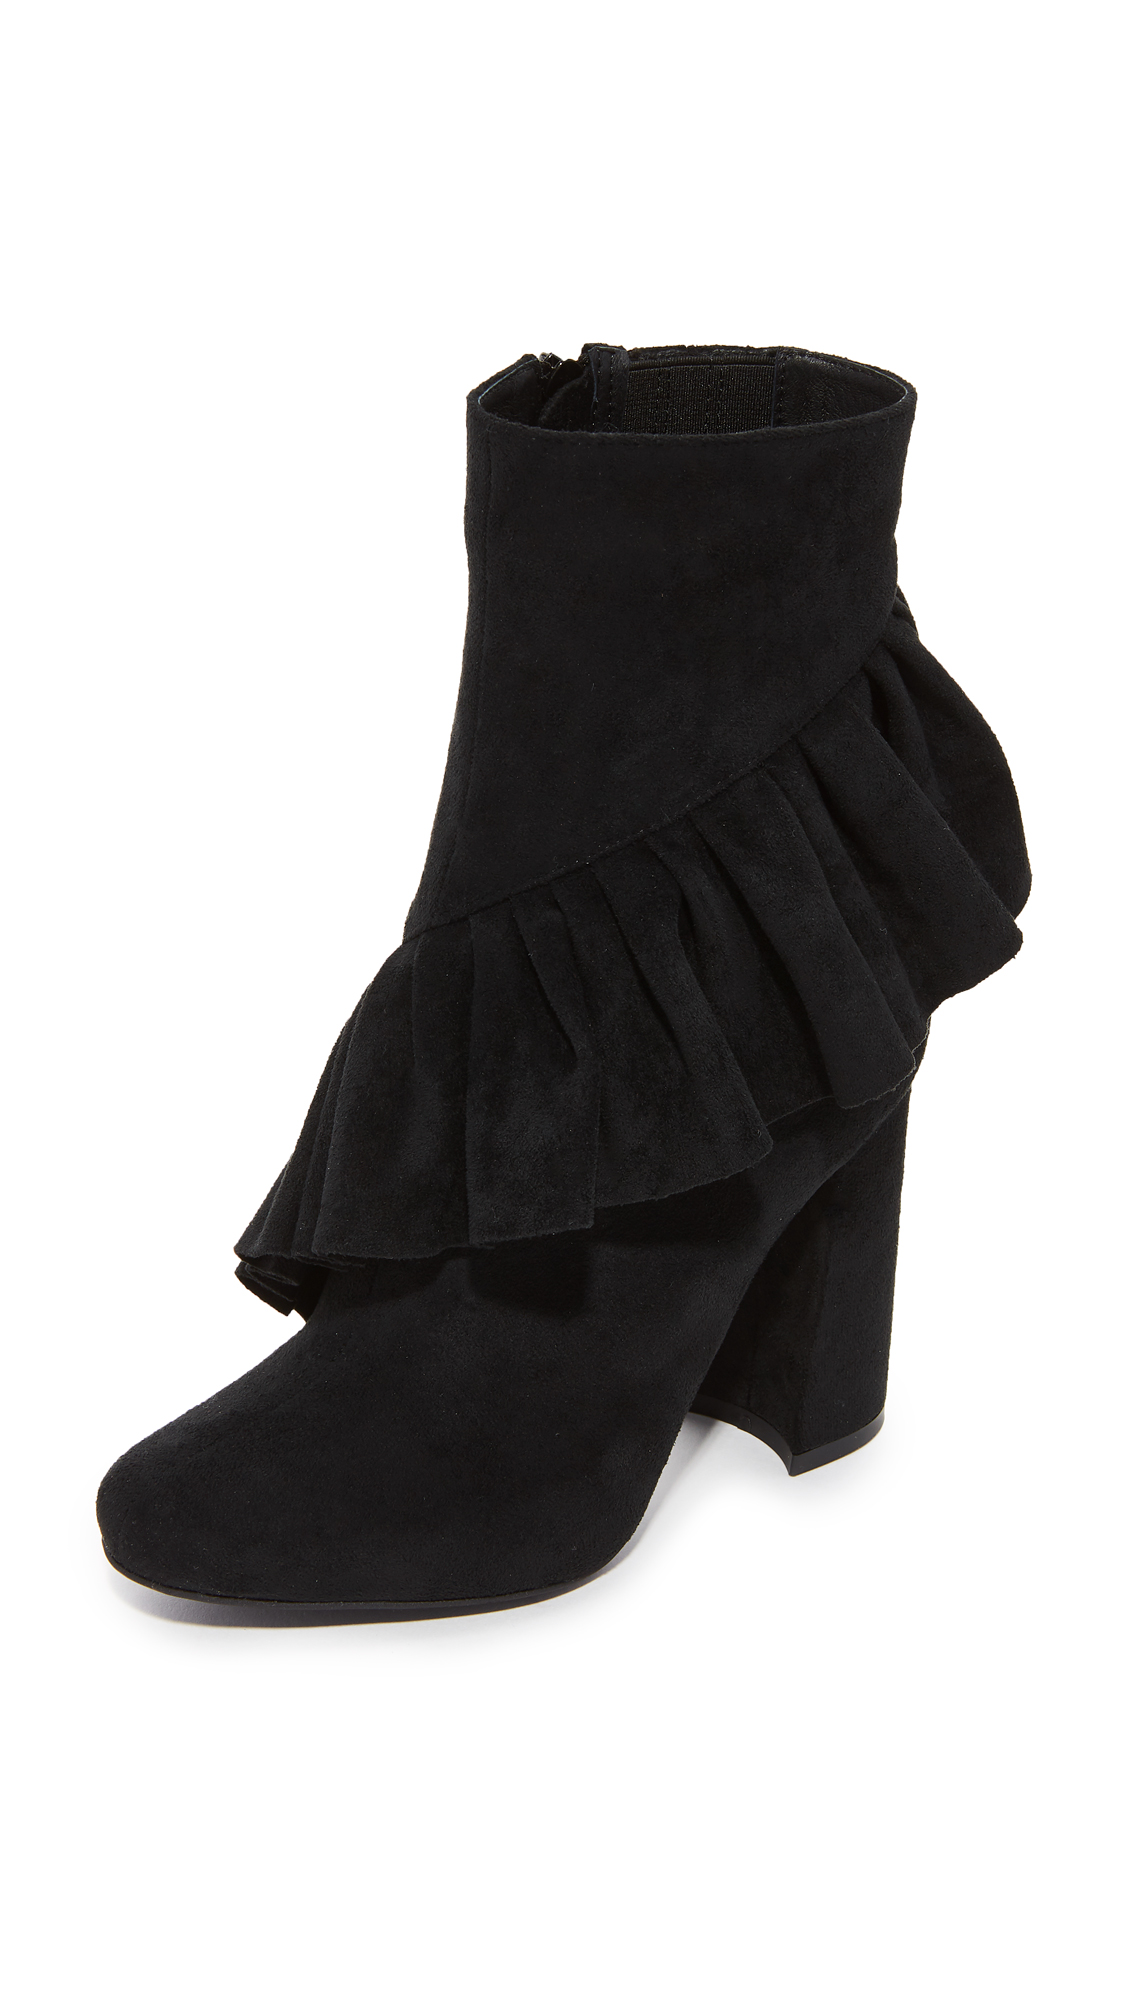 Jeffrey Campbell Reilly Ruffle Stretch Ankle Booties - Black